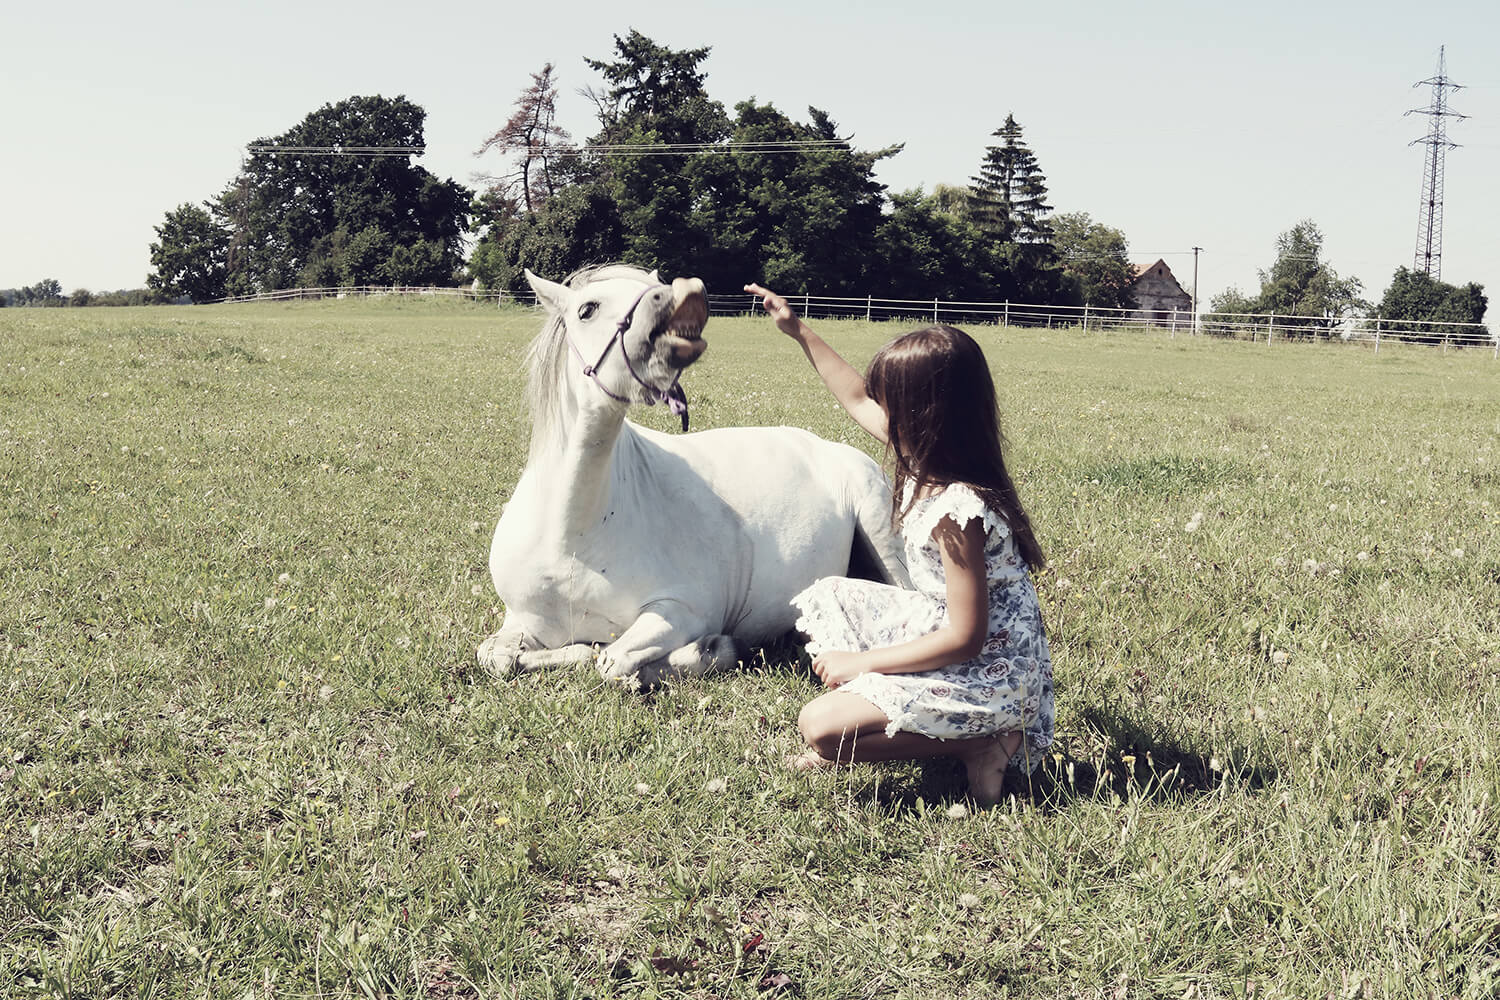 family photo of a little girl with a horse in nature